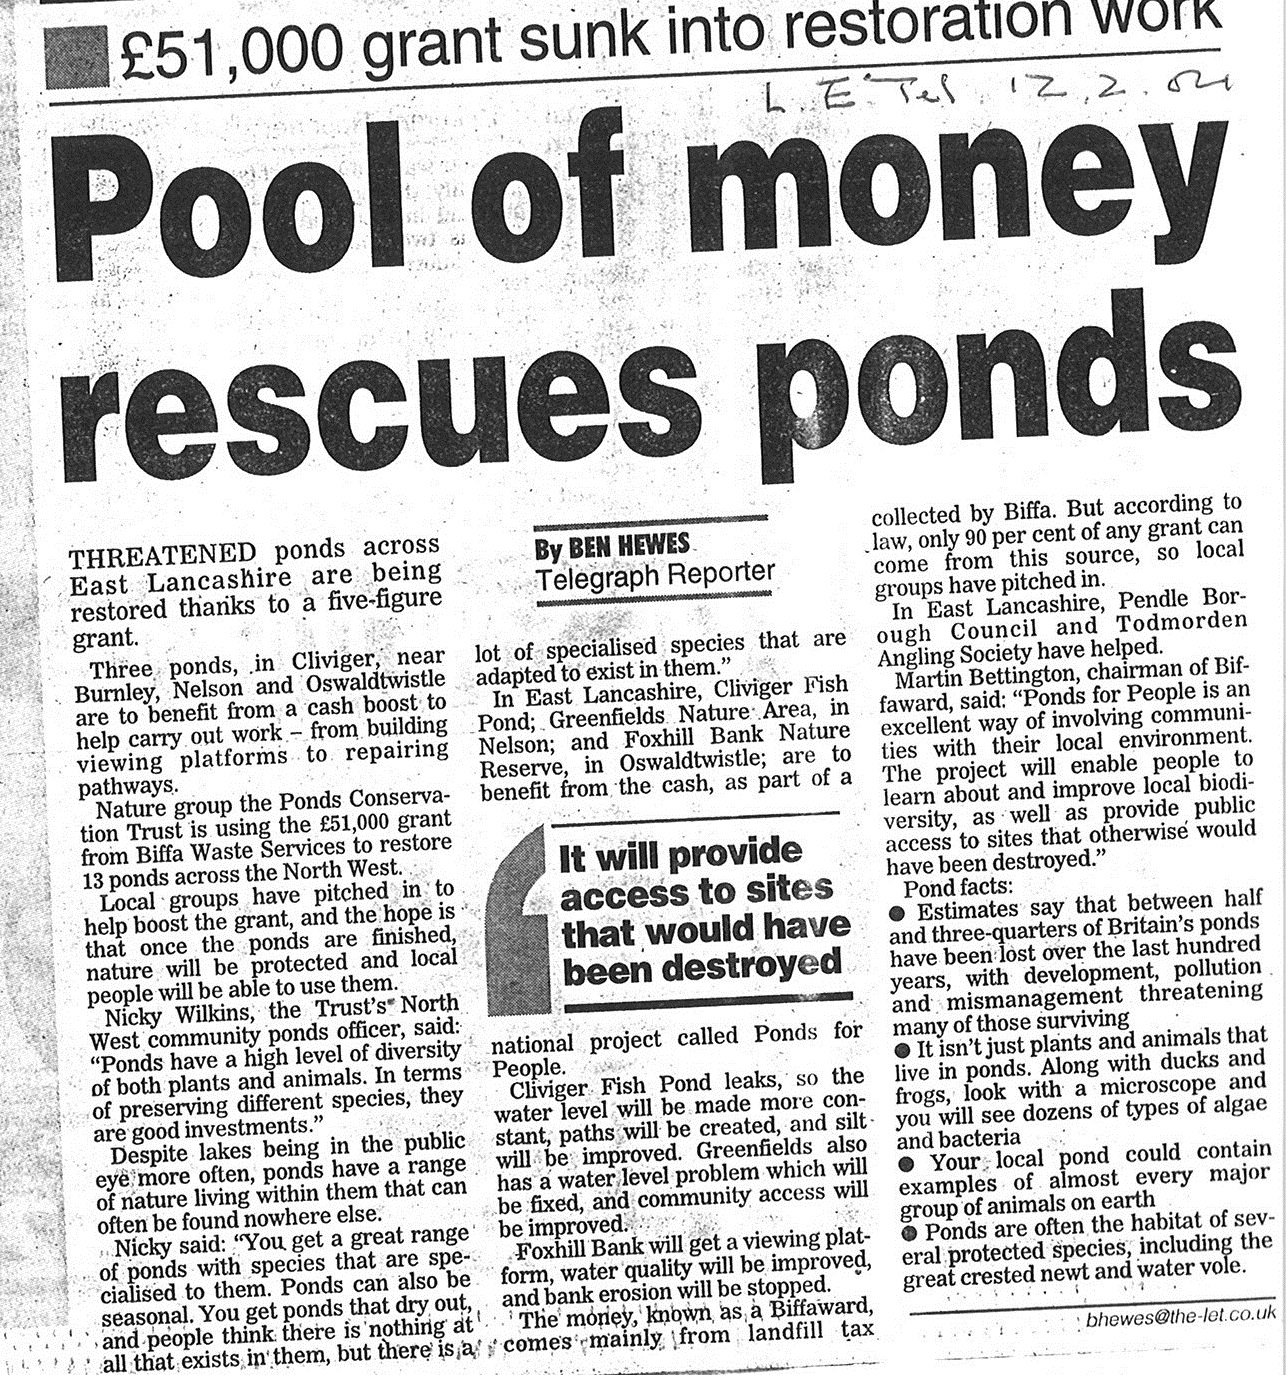 2004 Feb 12 Pool of money rescues ponds.jpg